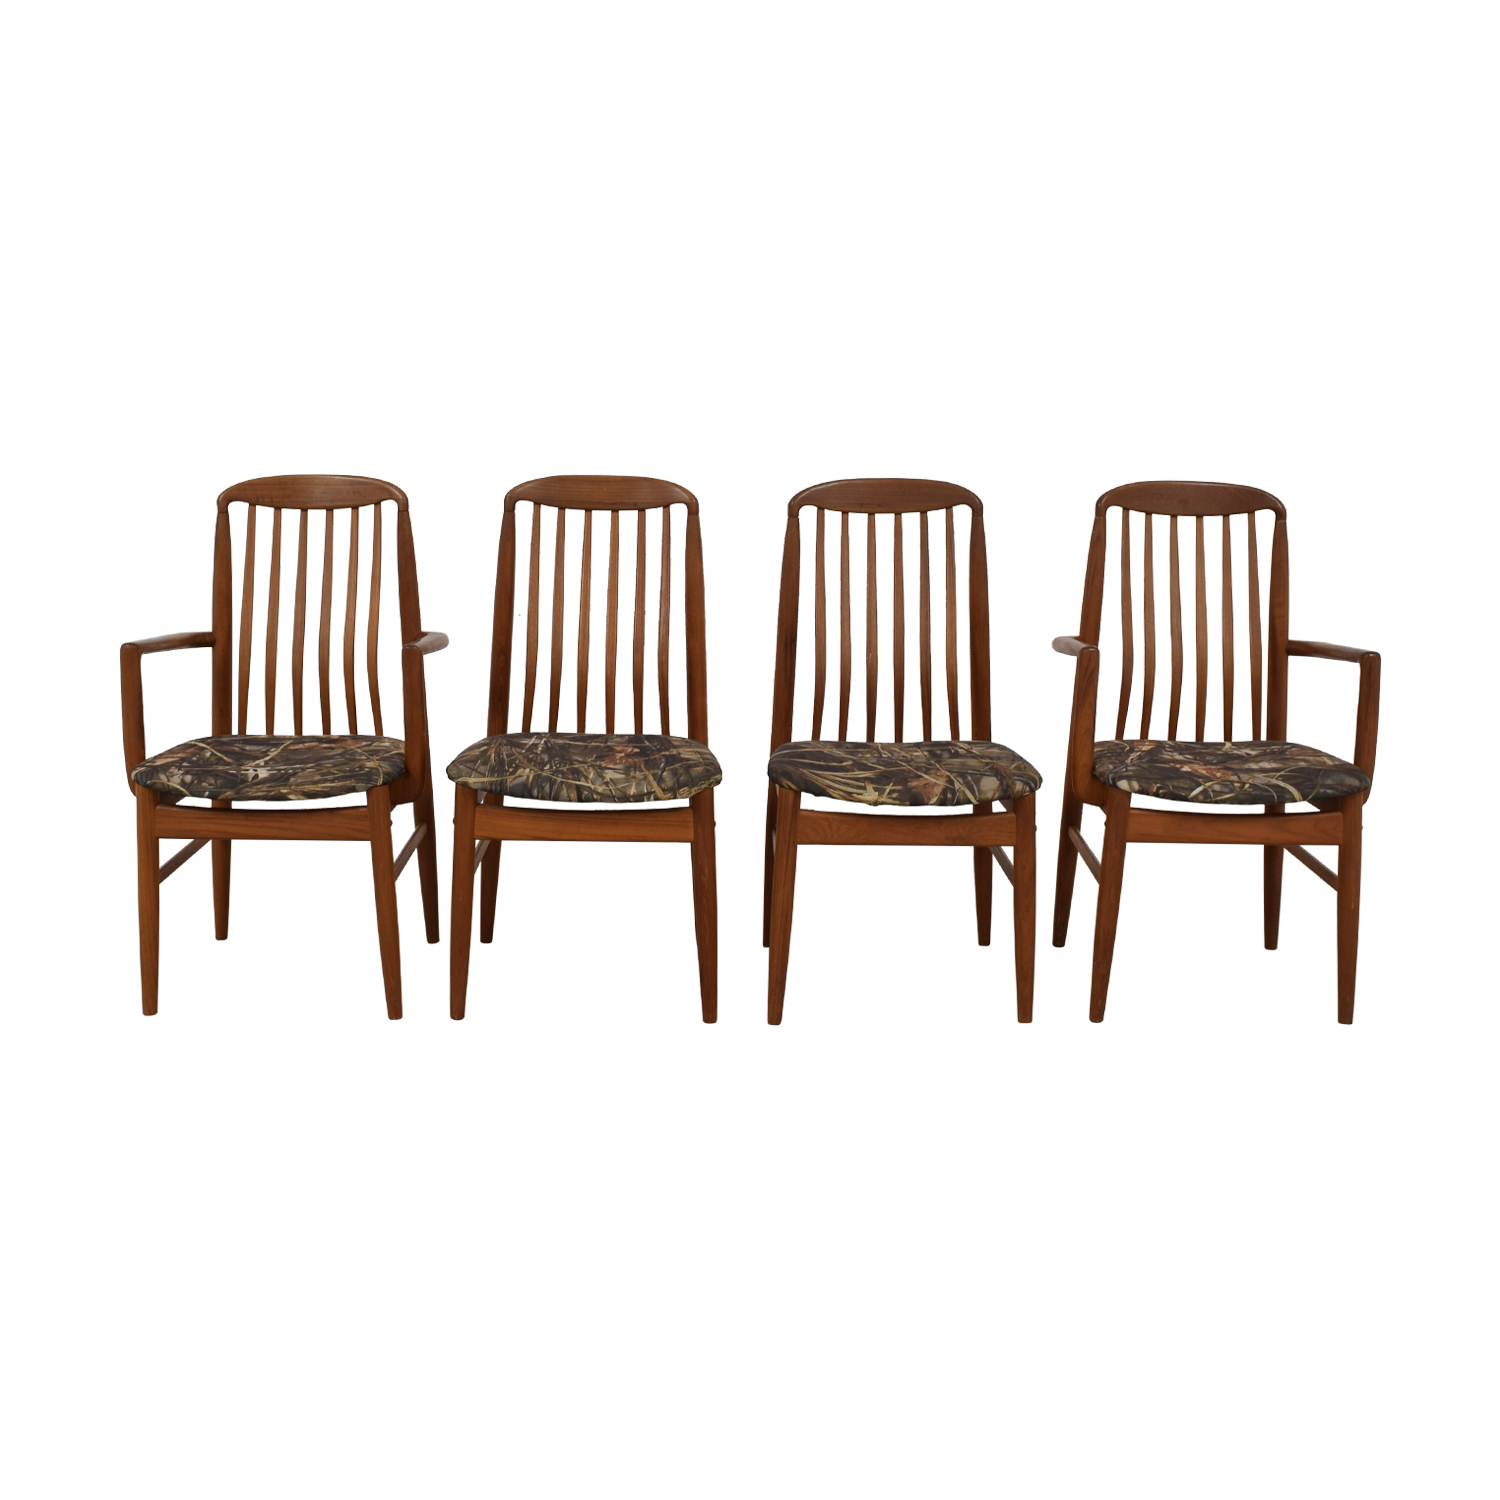 Scan Design Scan Design Danish Wood Curved Back Dining Chairs price